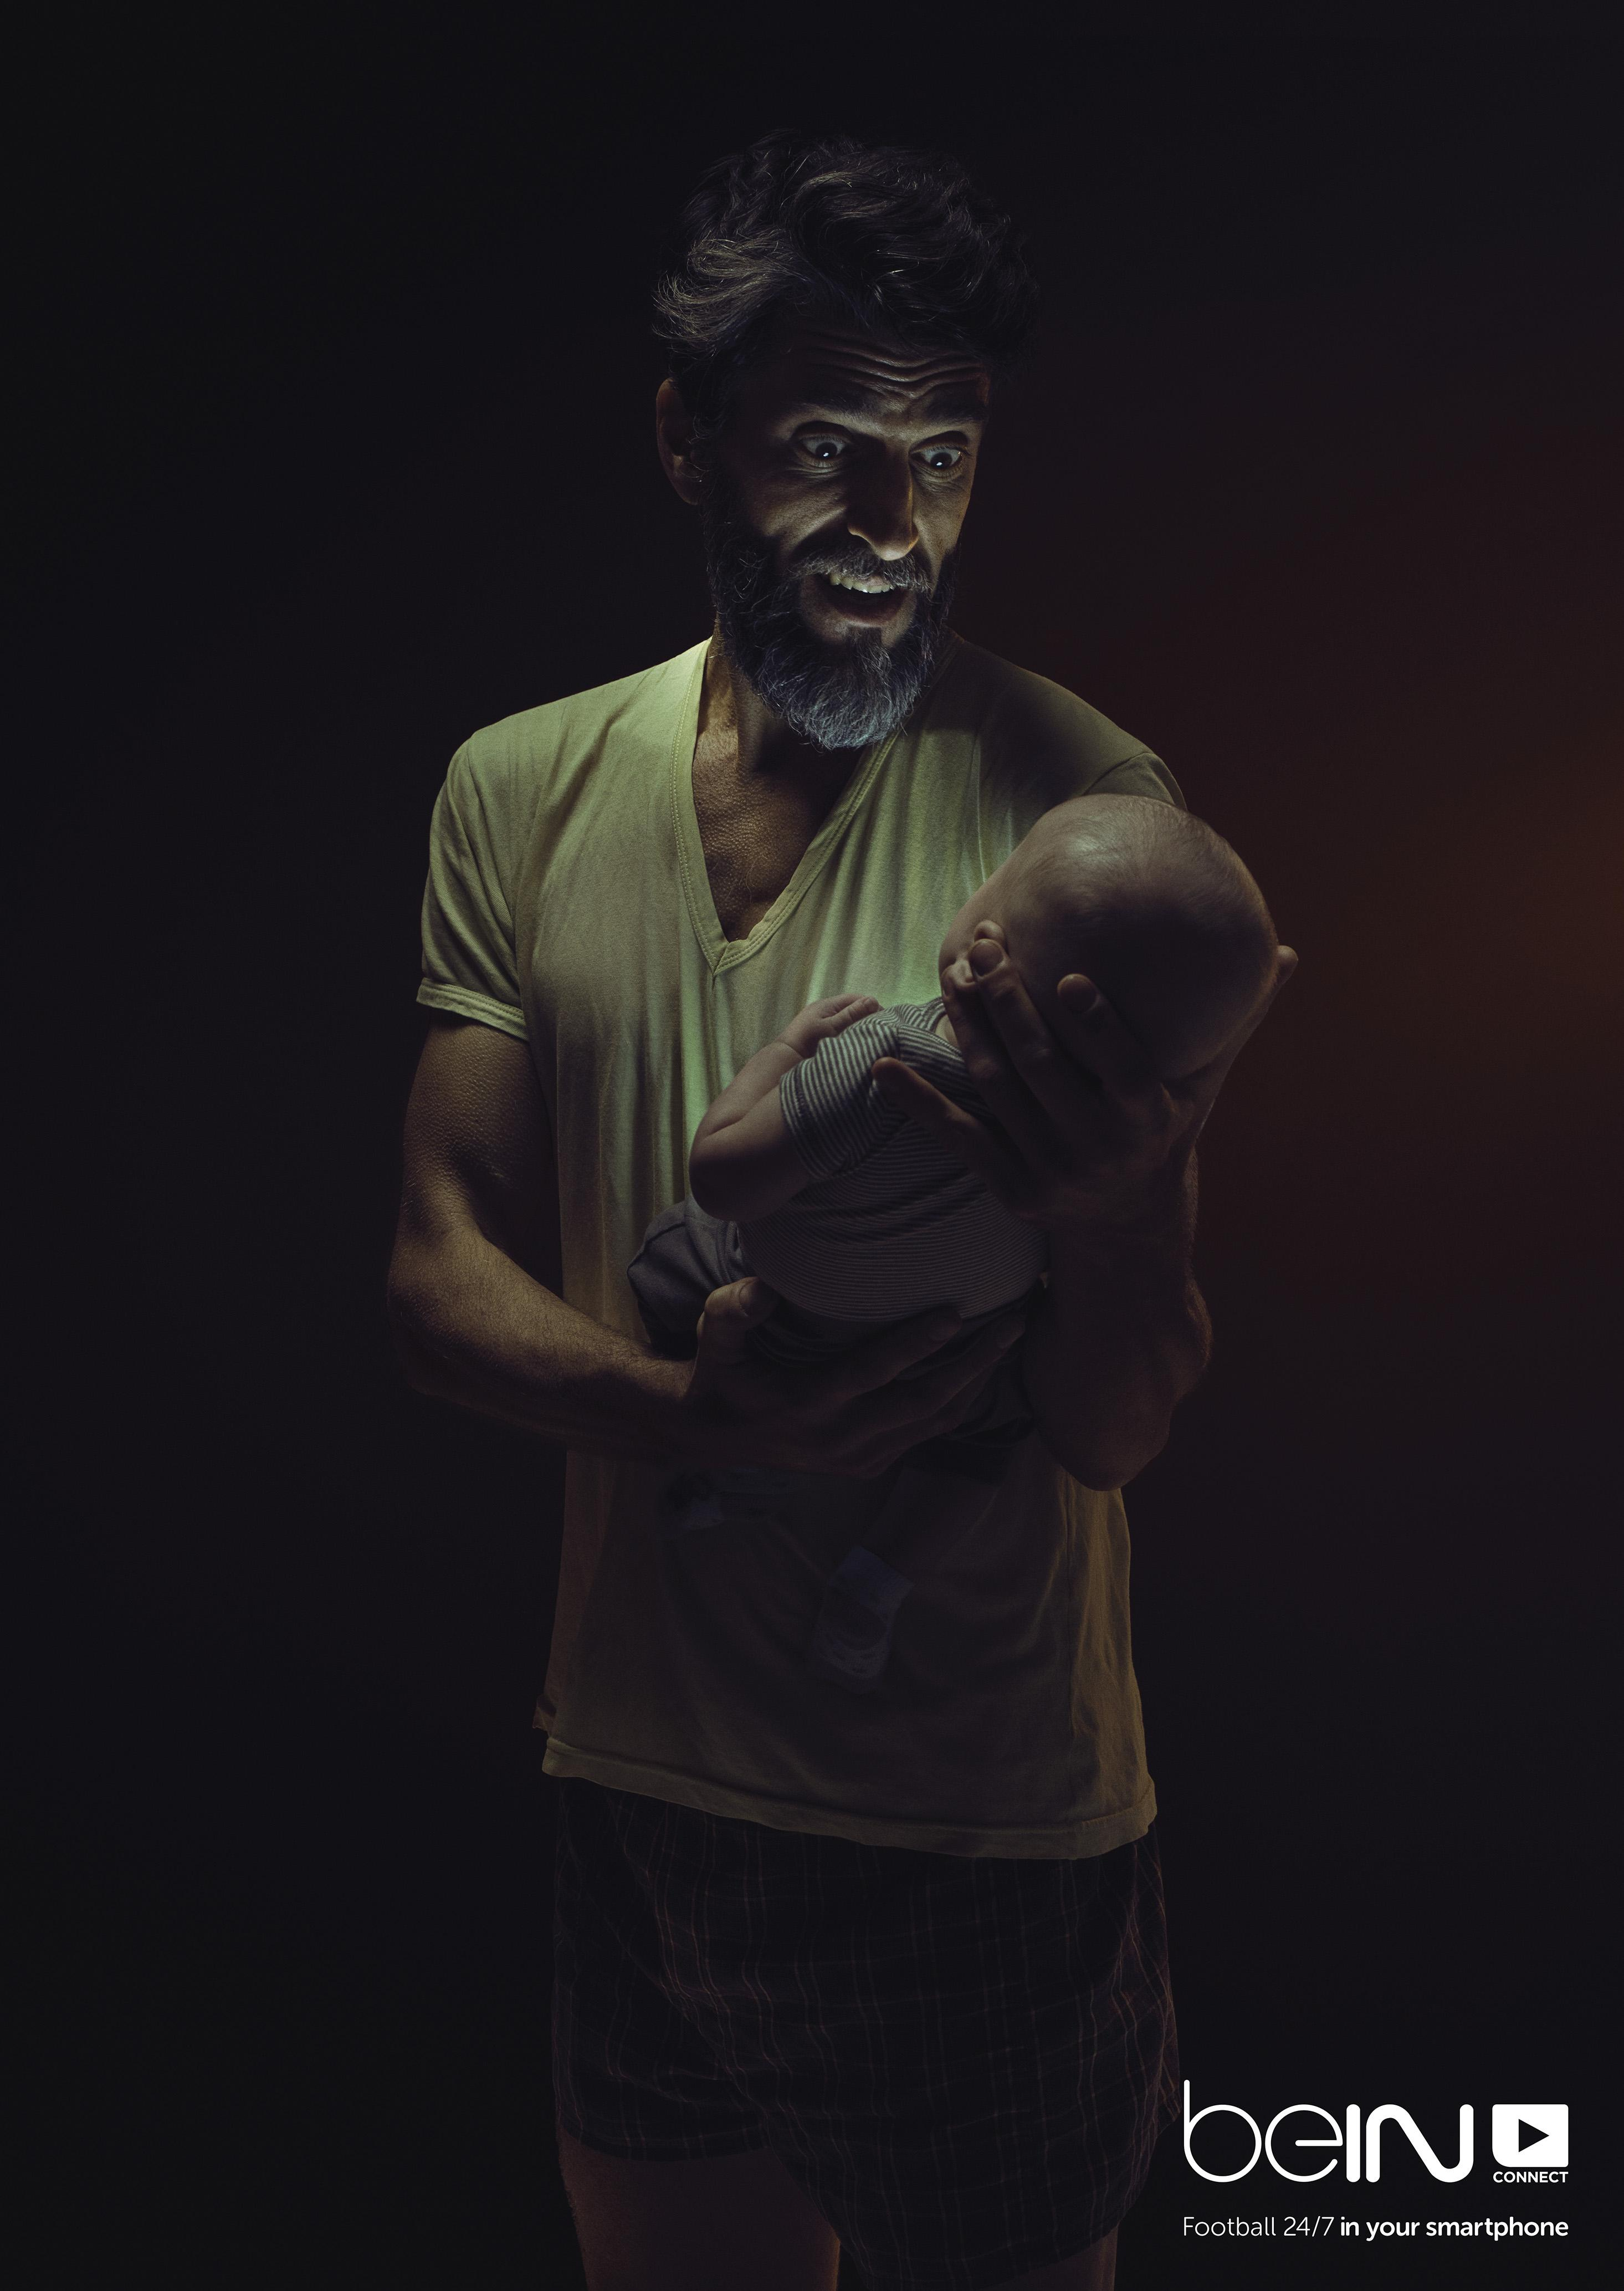 beIN SPORTS Print Ad - Fathers, 1